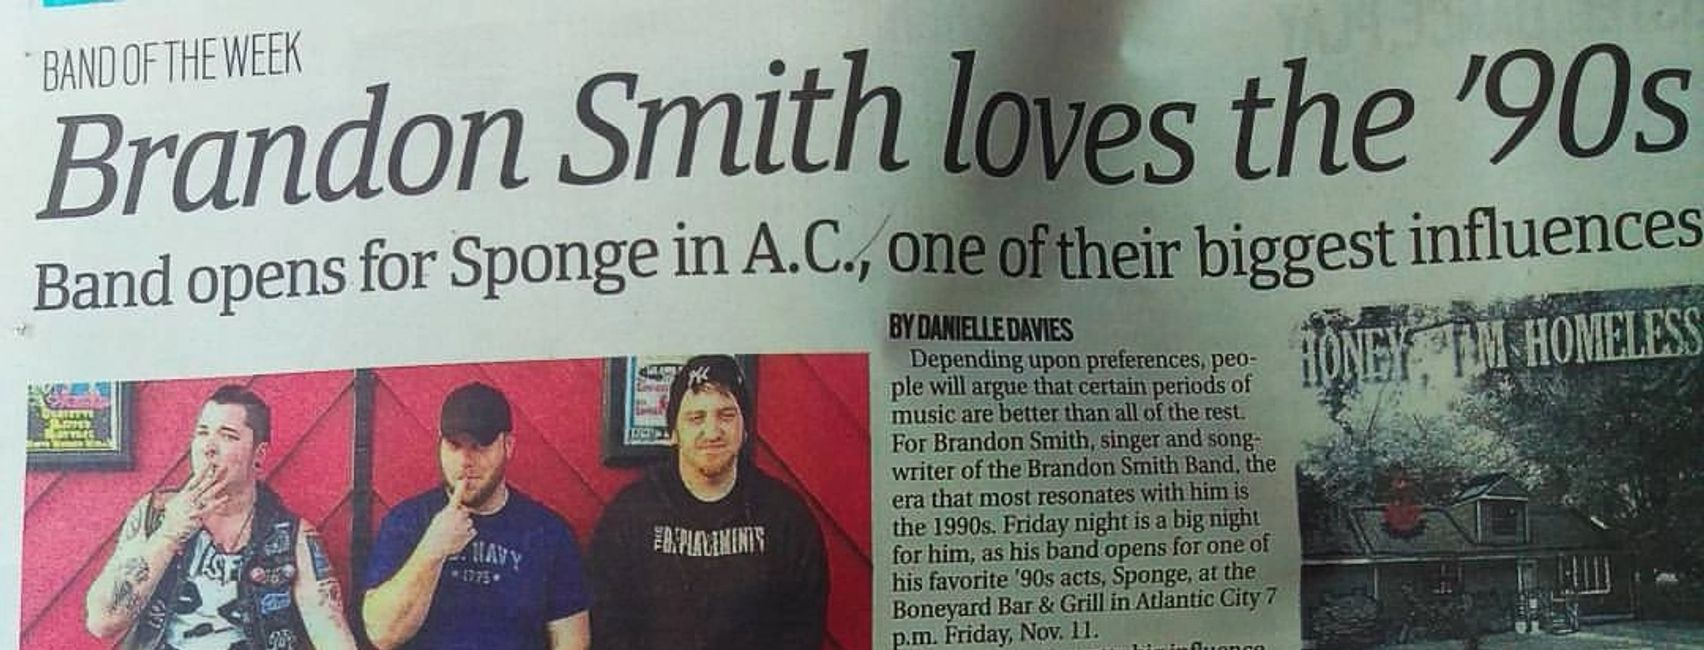 Honey, I'm Homeless (Brandon Smith Band) as Band of The Week in Press of Atlantic City